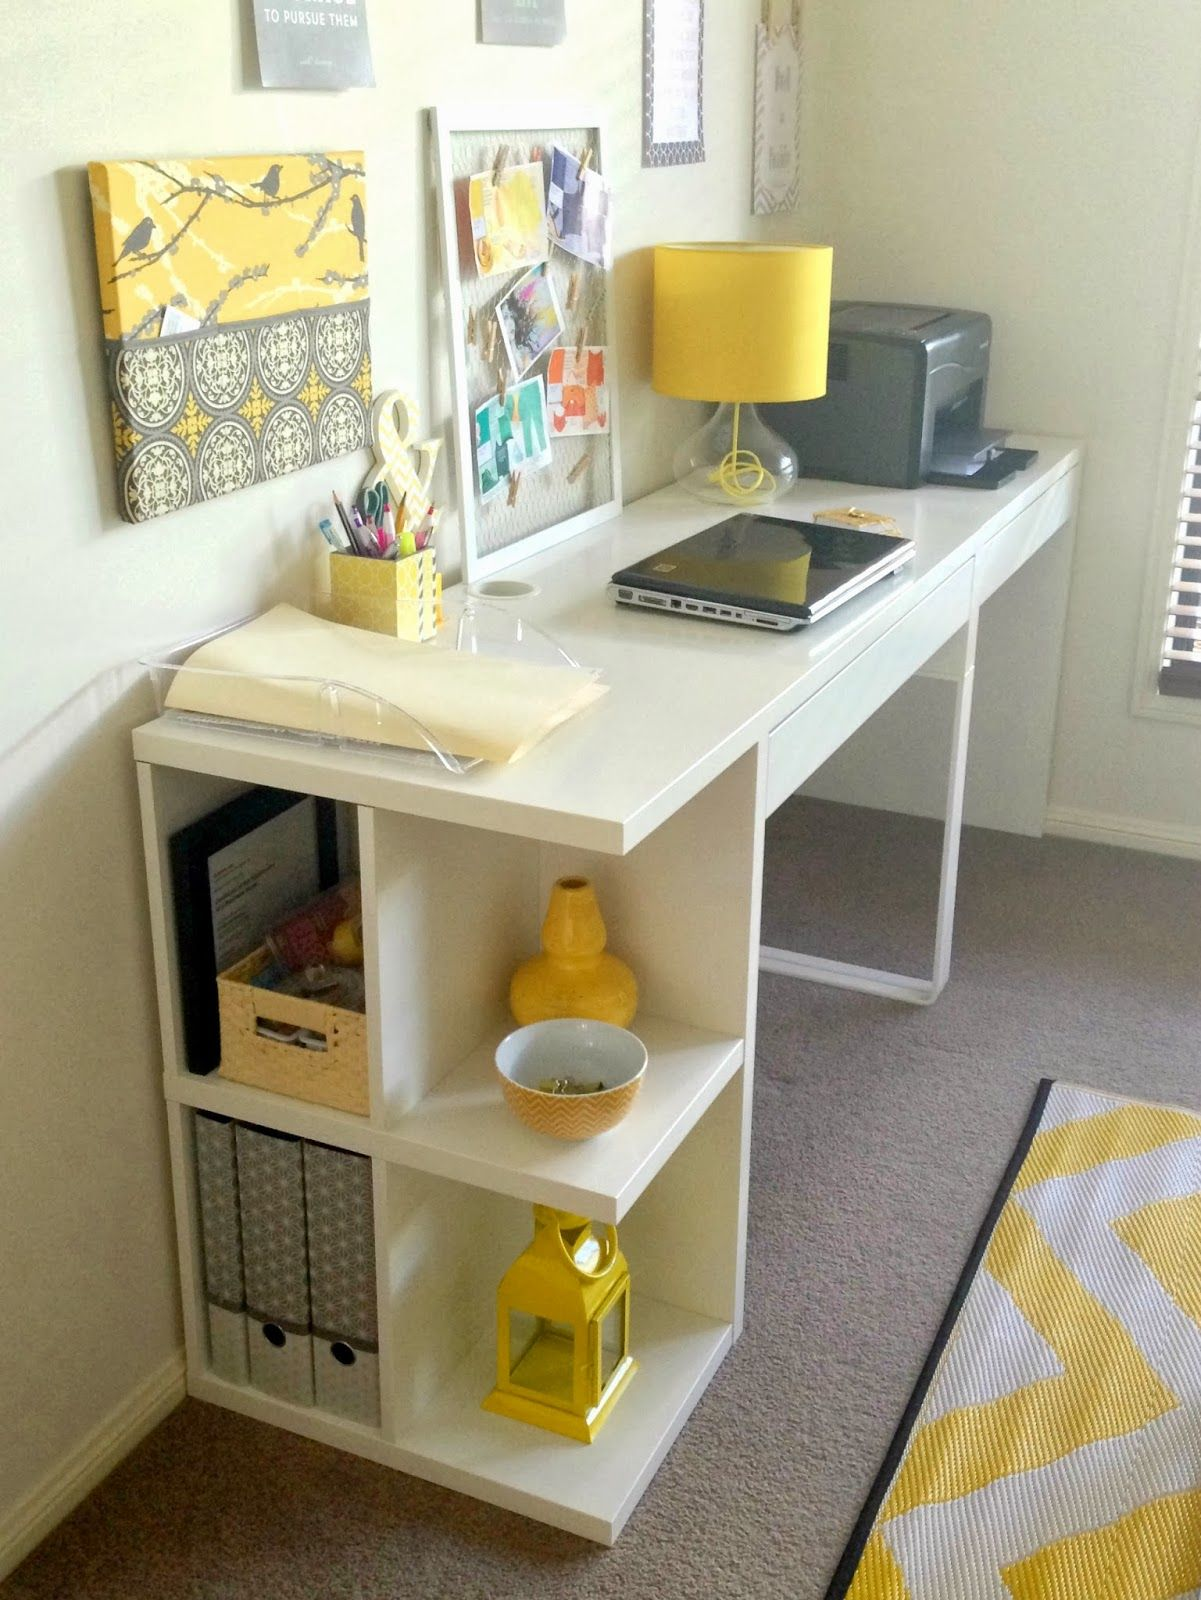 Charming Ikea Micke Desk For Home Office Furniture Ideas: Appealing White  Ikea Micke Deskplus Shelves